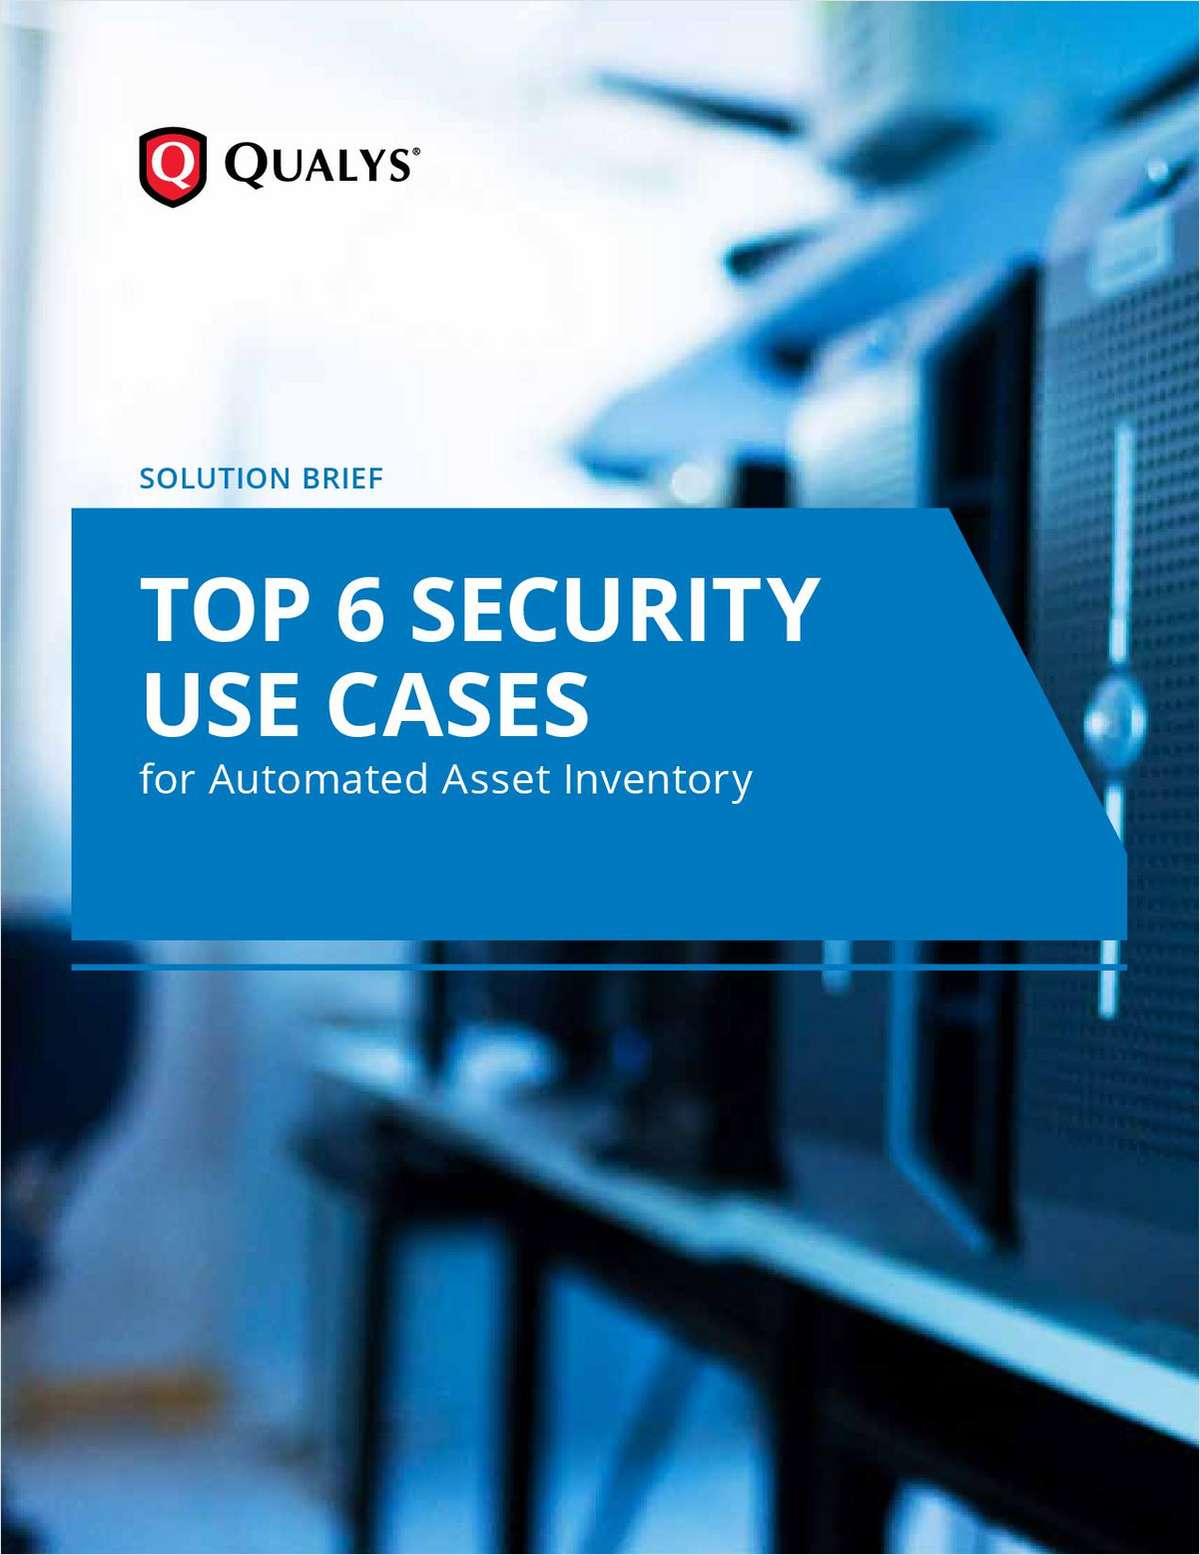 Top 6 Security Use Cases for Automated Asset Inventory